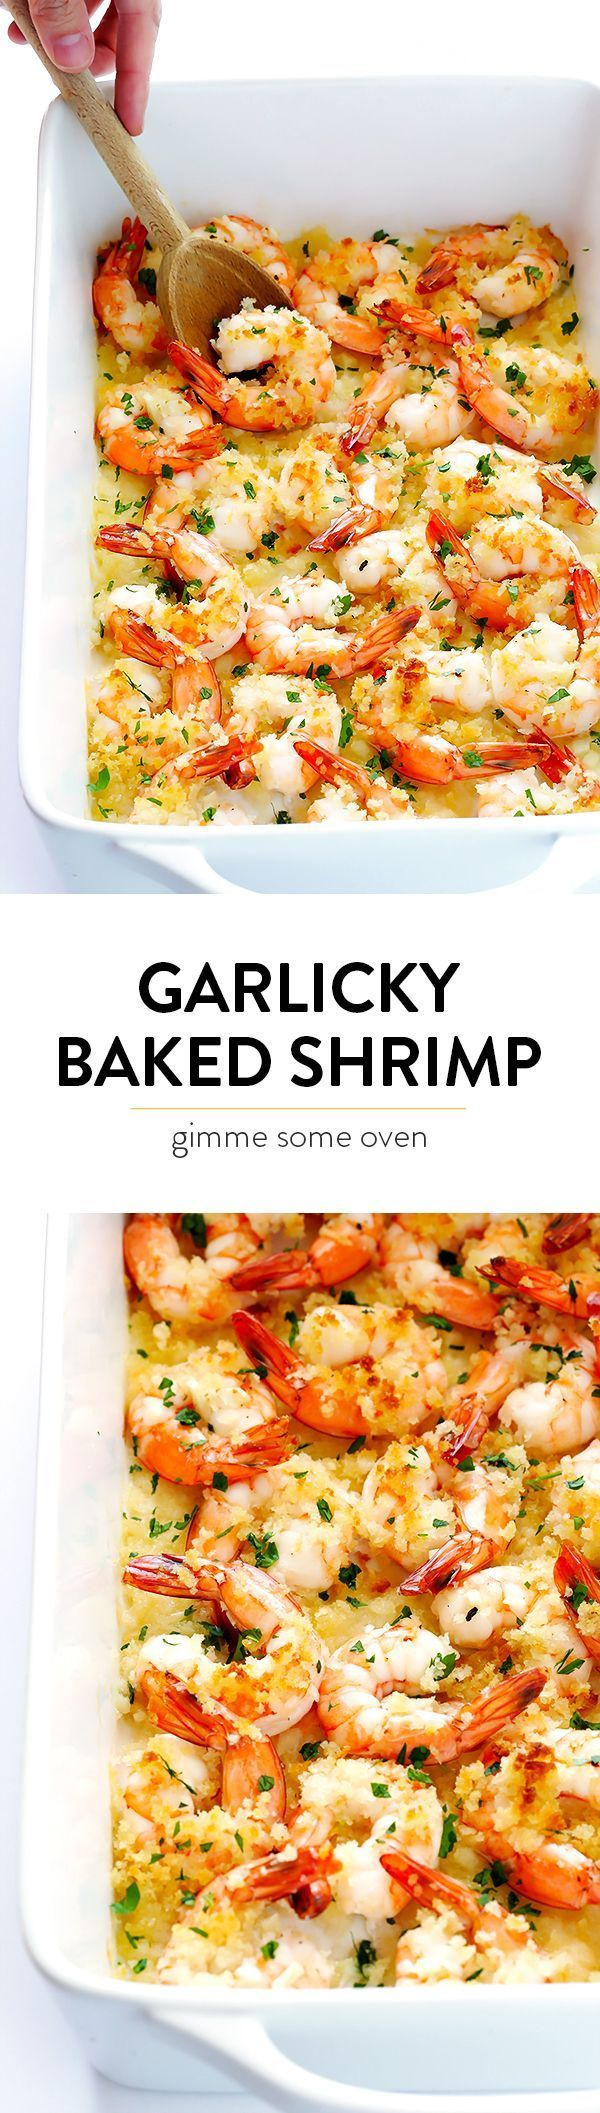 Garlicky Baked Shrimp Recipe